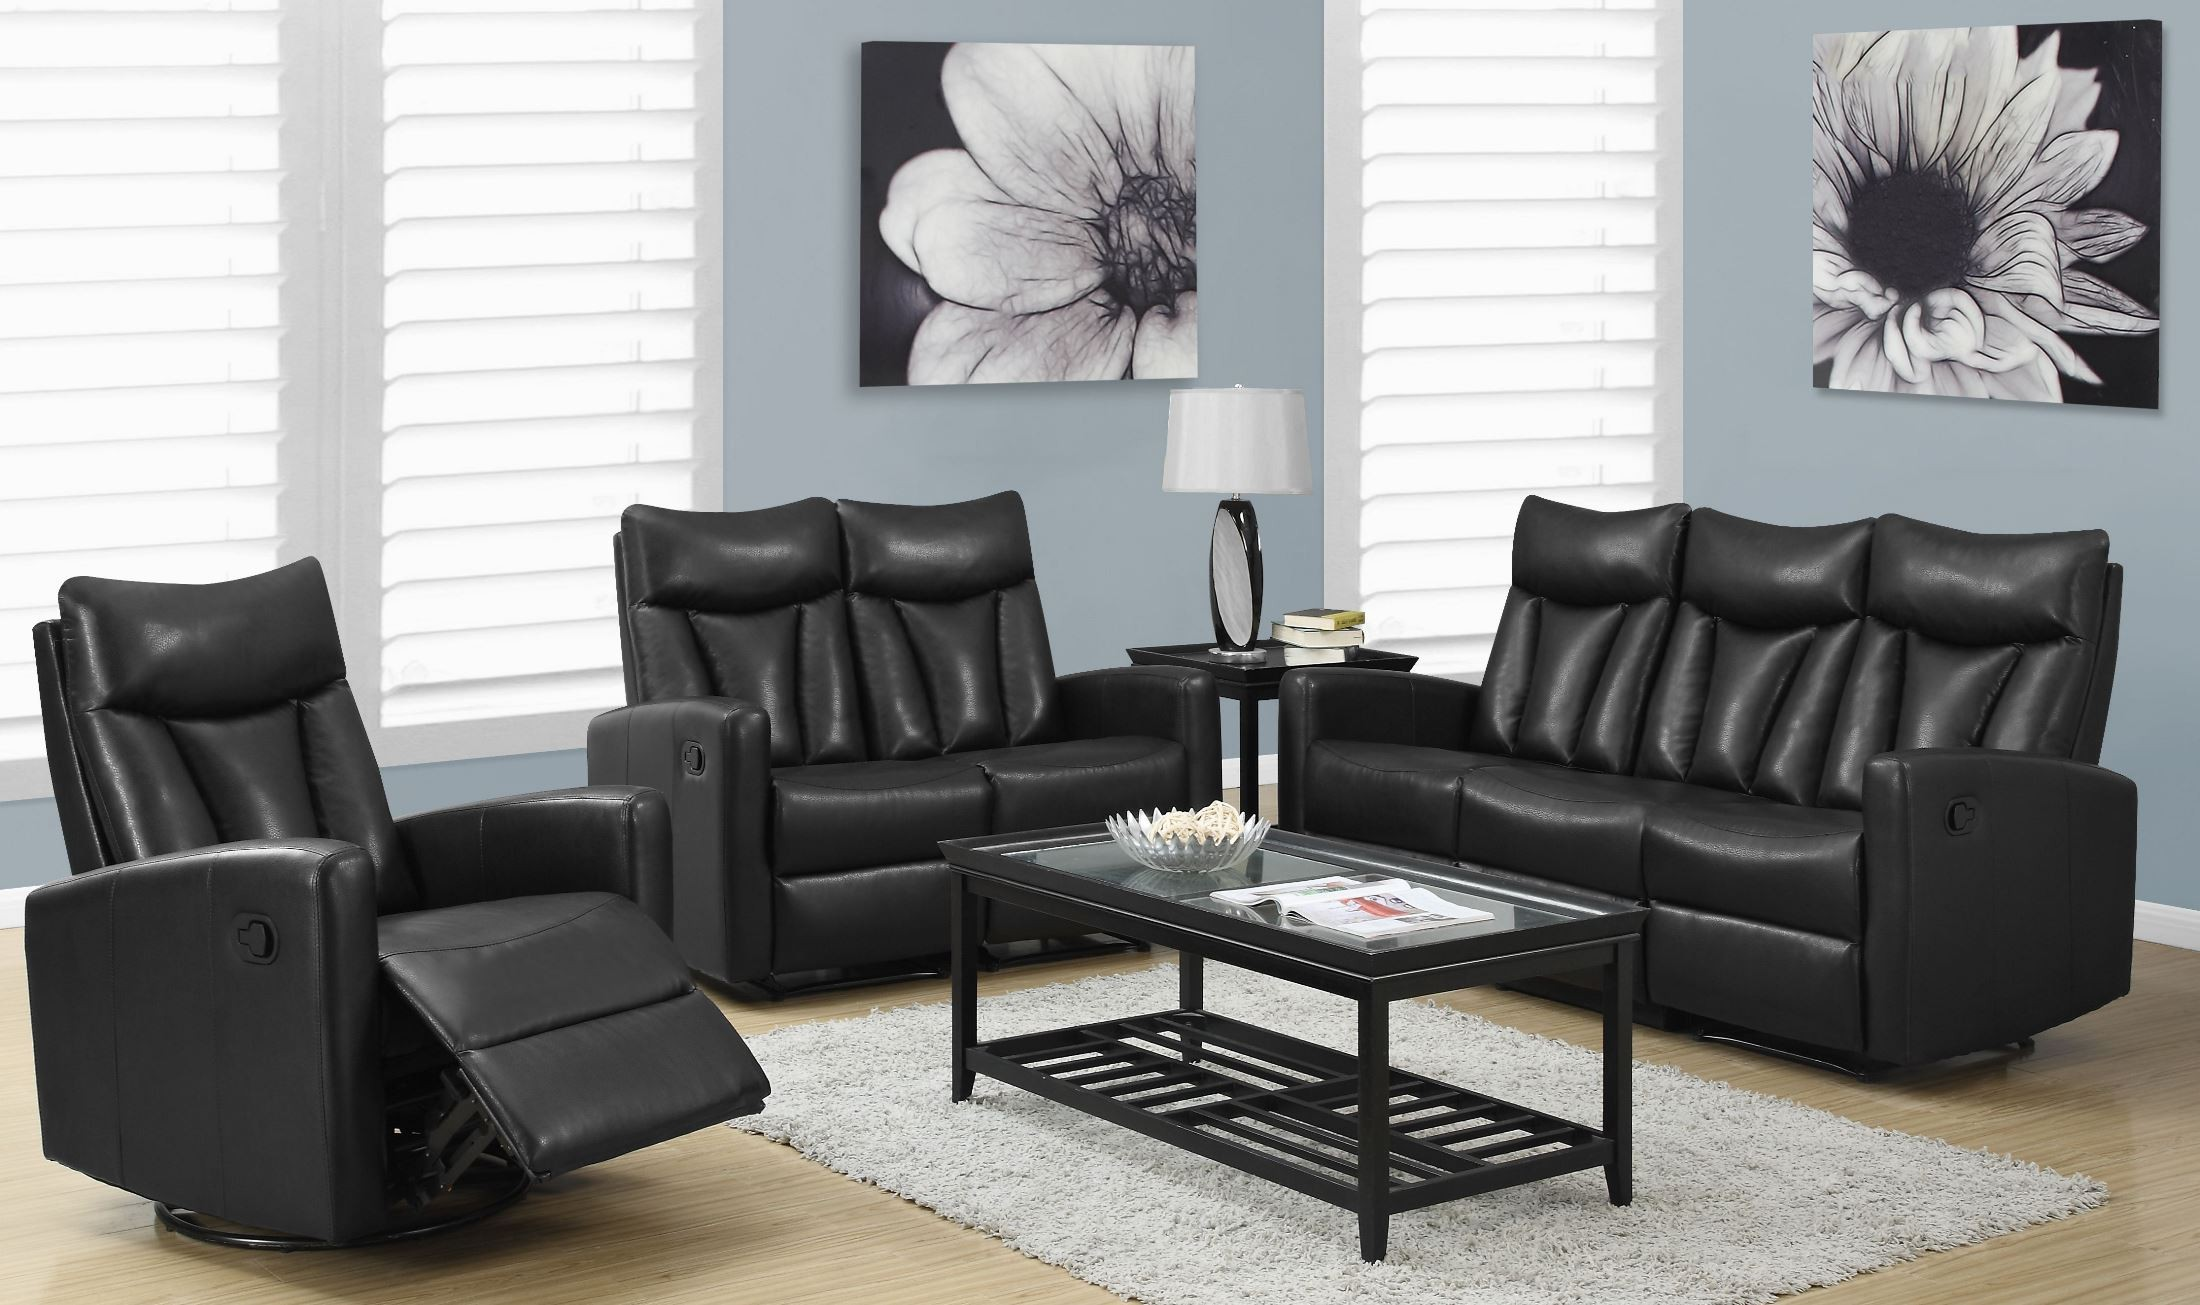 87bk 3 black bonded leather reclining living room set from for Black living room set